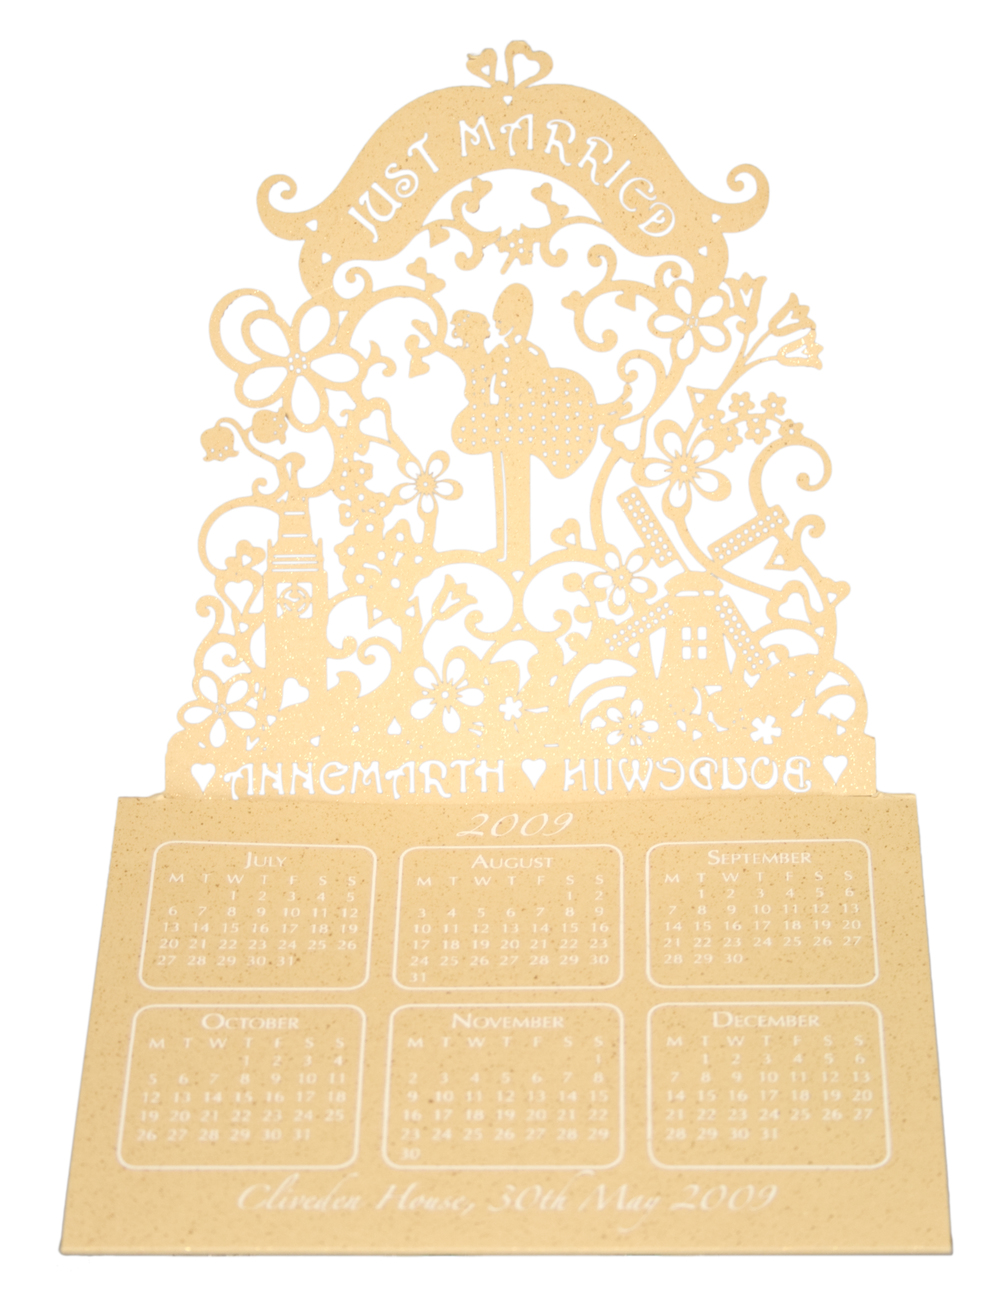 Chartula | Little City Tales Laser Cut Calendar Favour #LaserCut #LuxuryWedding #BespokeStationery #LondonWedding #AmsterdamWedding | www.chartula.co.uk